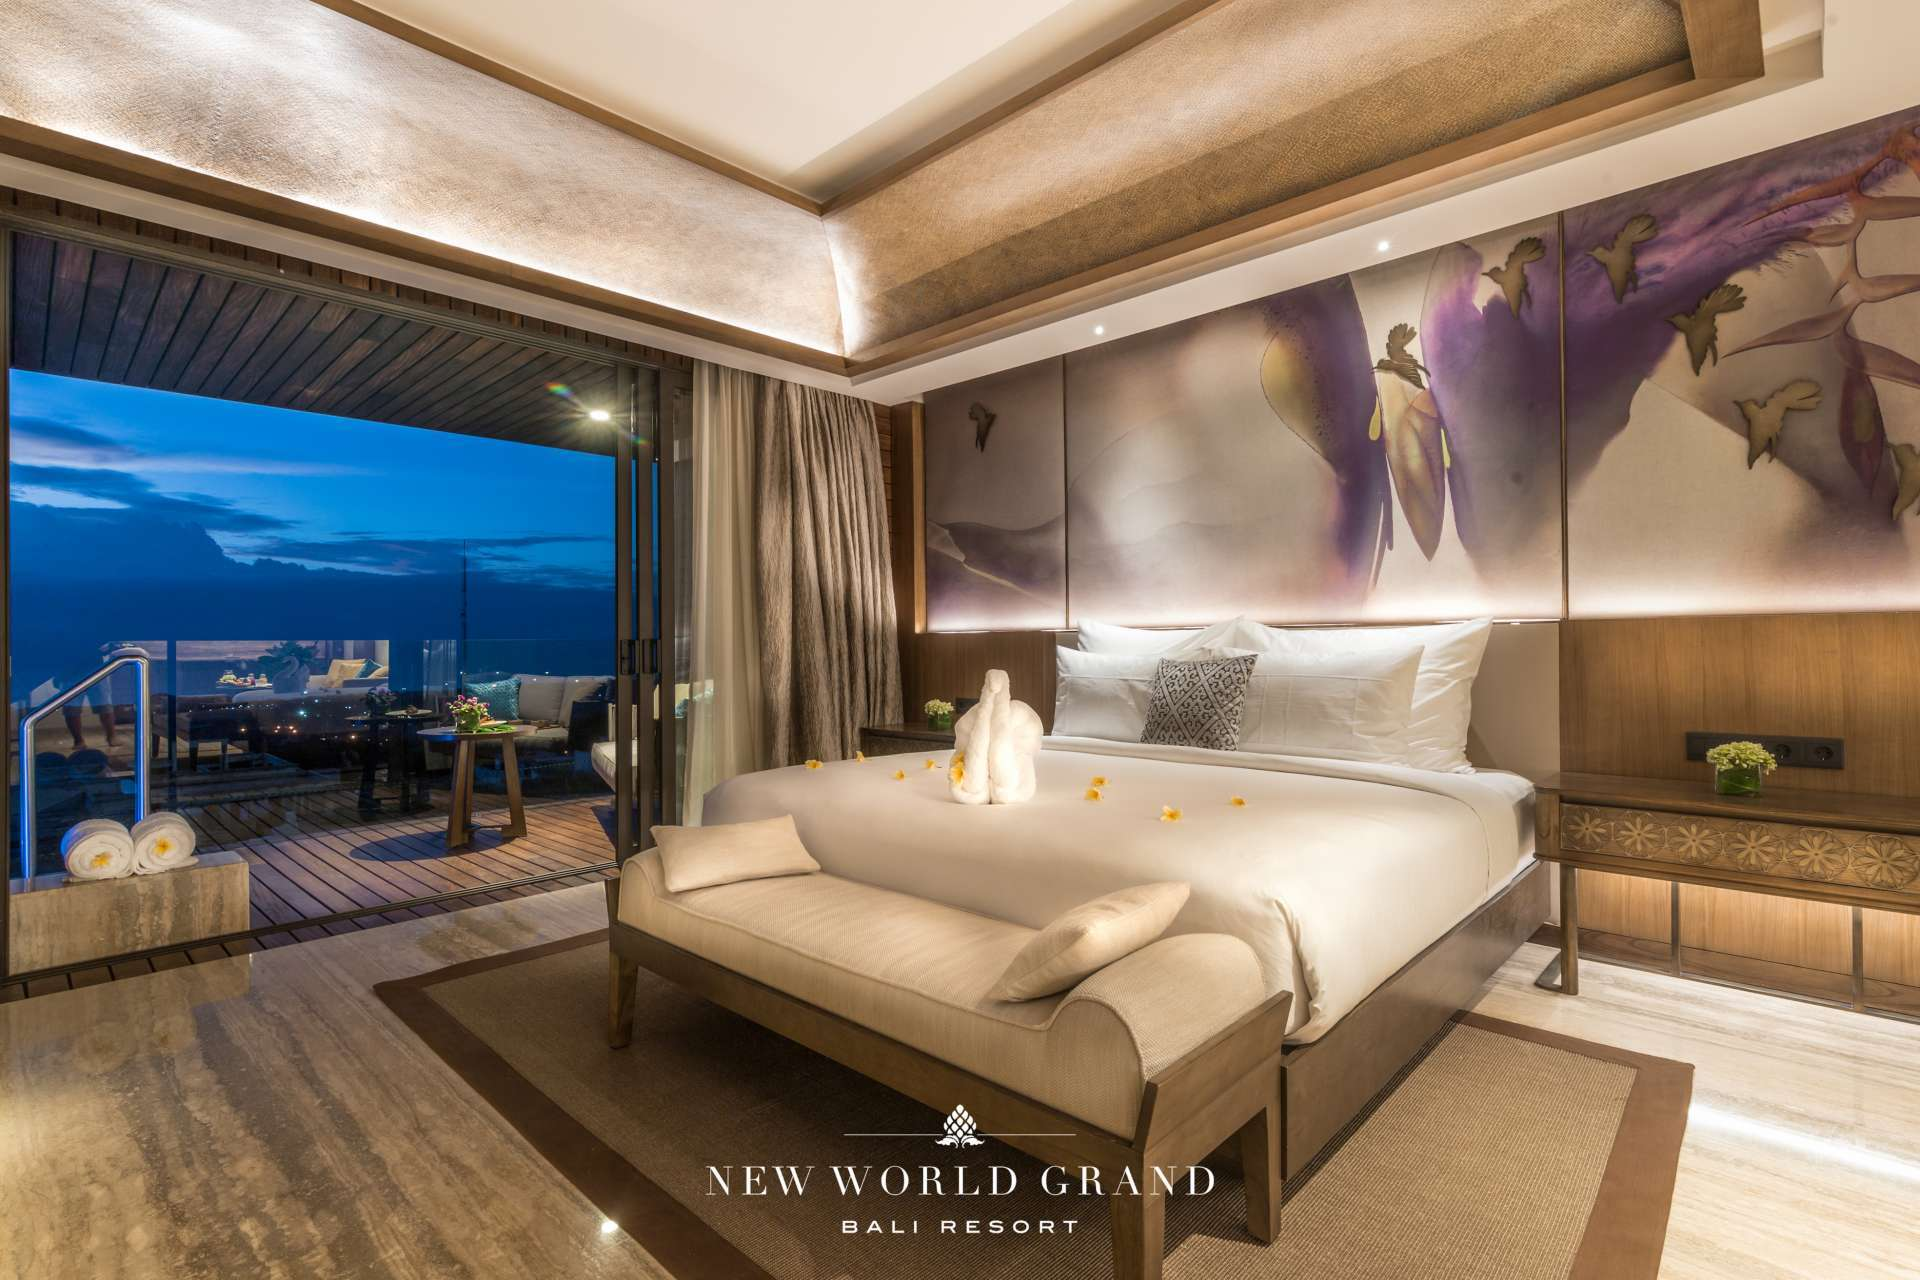 Grand Suite - New World Grand Bali Resort